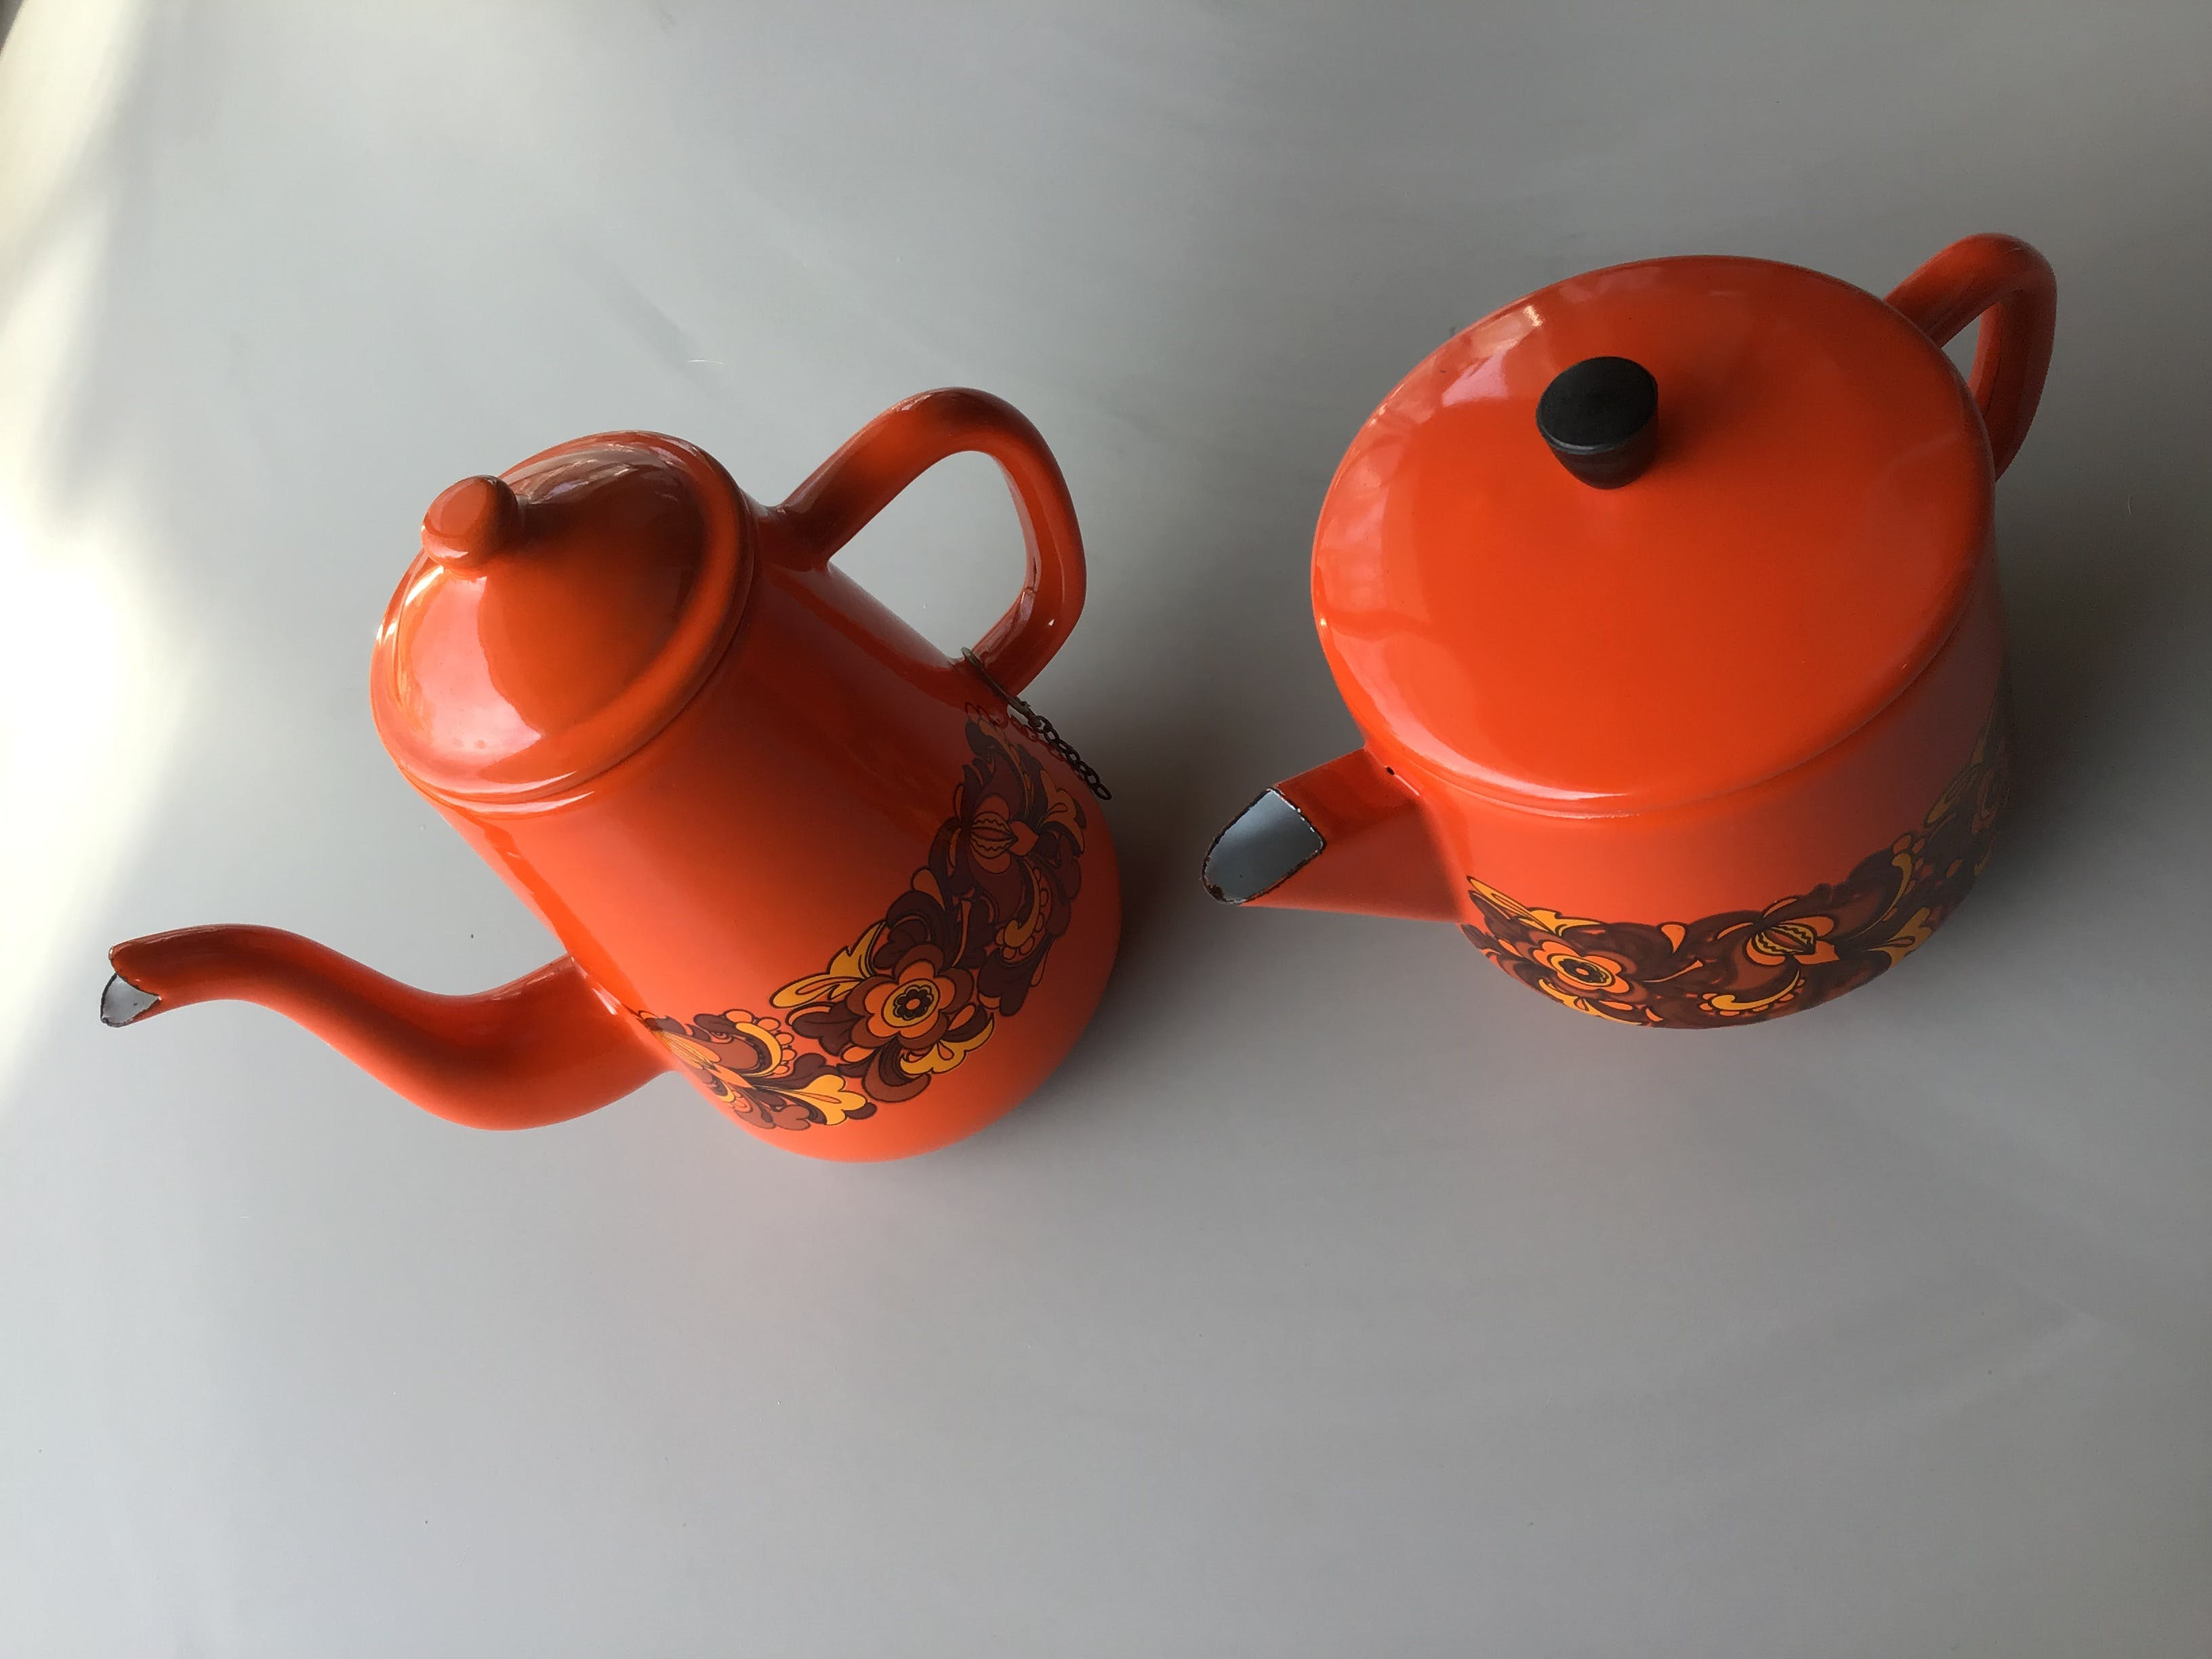 Emaille koffie- en theepot